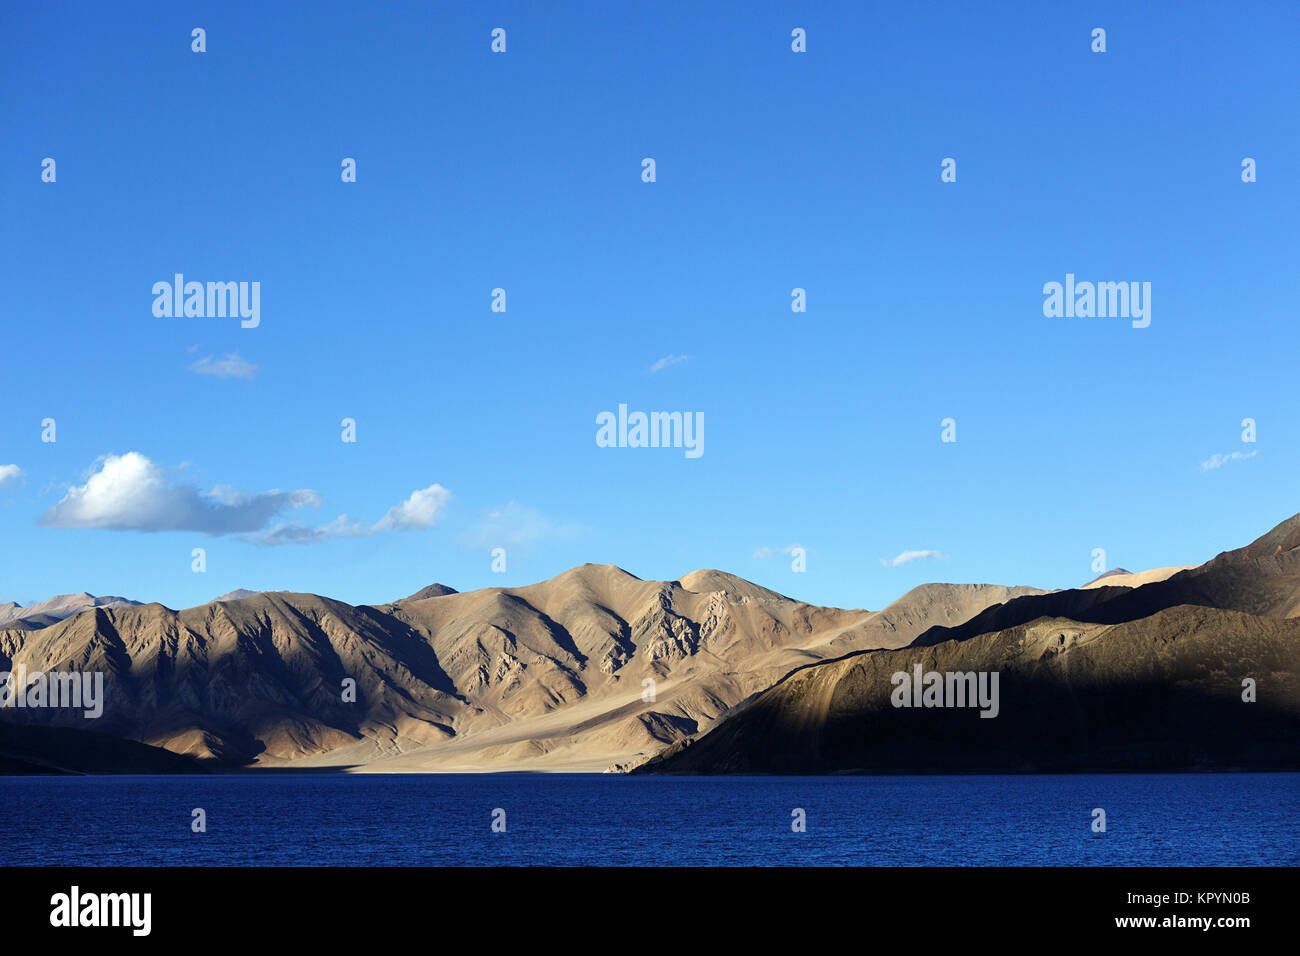 Barren landscape and the himalayan mountains by the blue lake of Pangong Tso, Ladakh, Jammu and Kashmir, India. - Stock Image